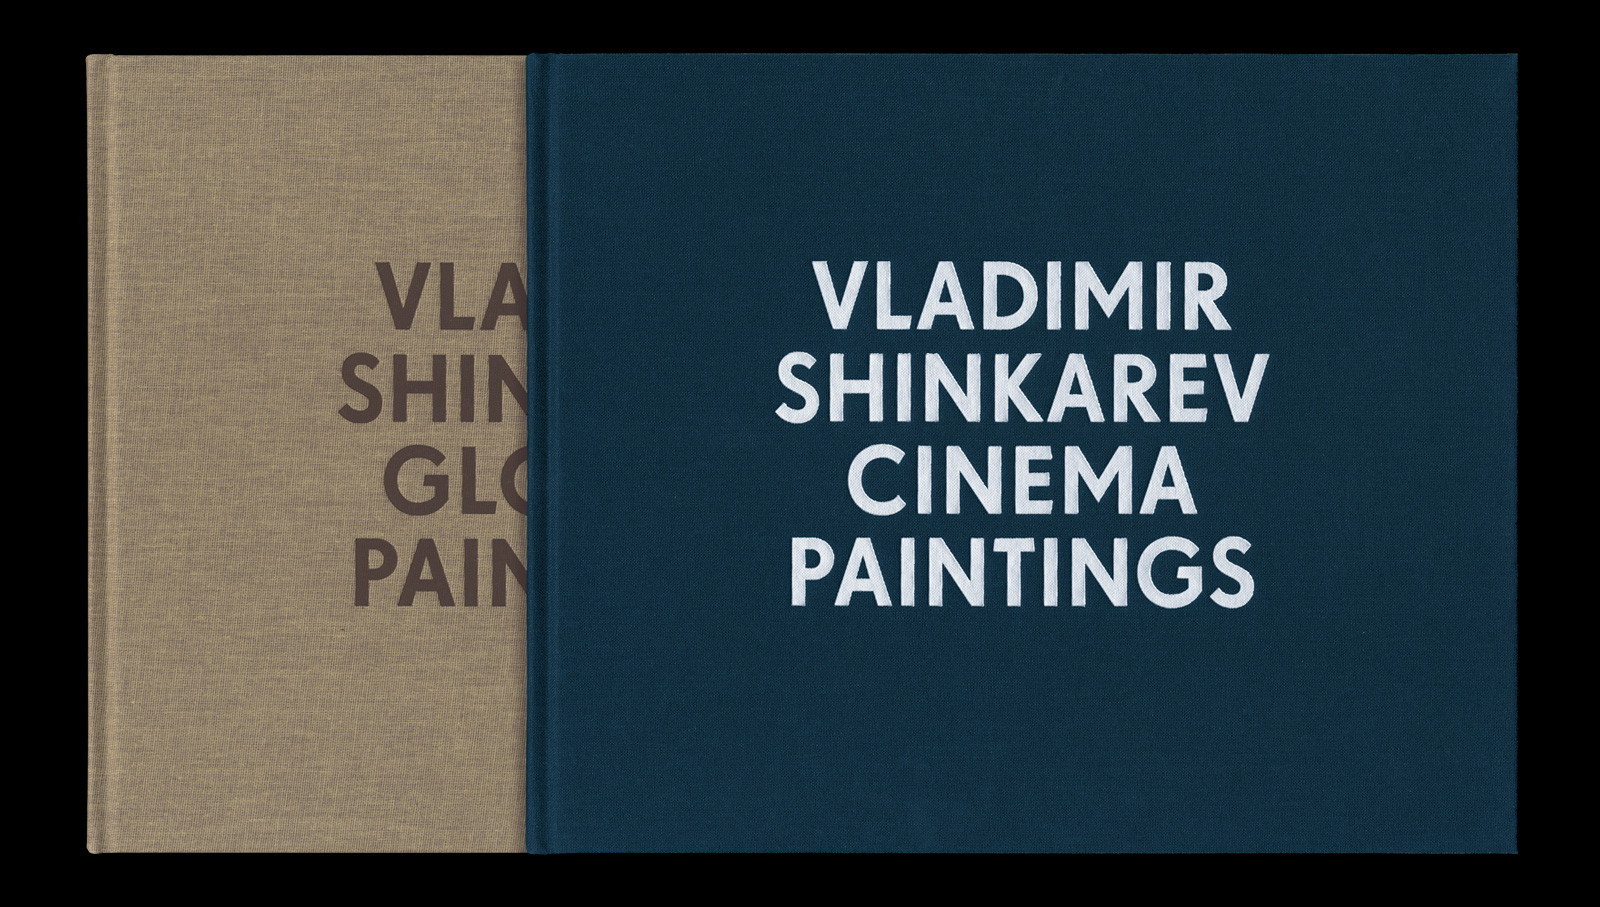 Vladimir Shinkarev. Gloomy Paintings/Cinema Paintings. Fotografie: Ian Brown, Oslo / Bibliothek Rijksakademie, Amsterdam